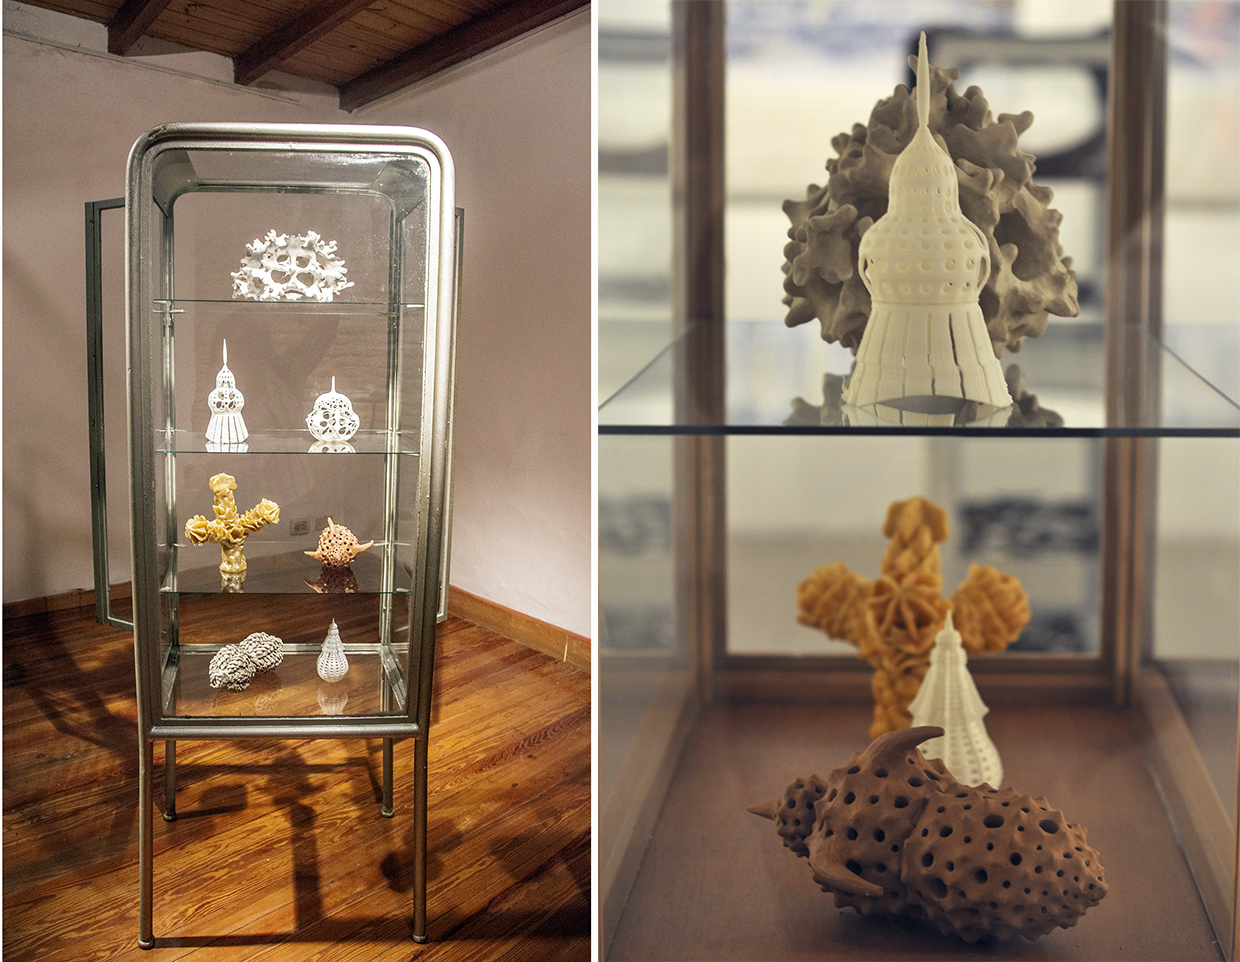 The different objects in the cabinet are representations of illustrations from Ernst Haeckel (XIX century naturalist). Three are 3D printed and three done by hand (unfired clay and wax). How much is gained/transformed in each translation exercise?